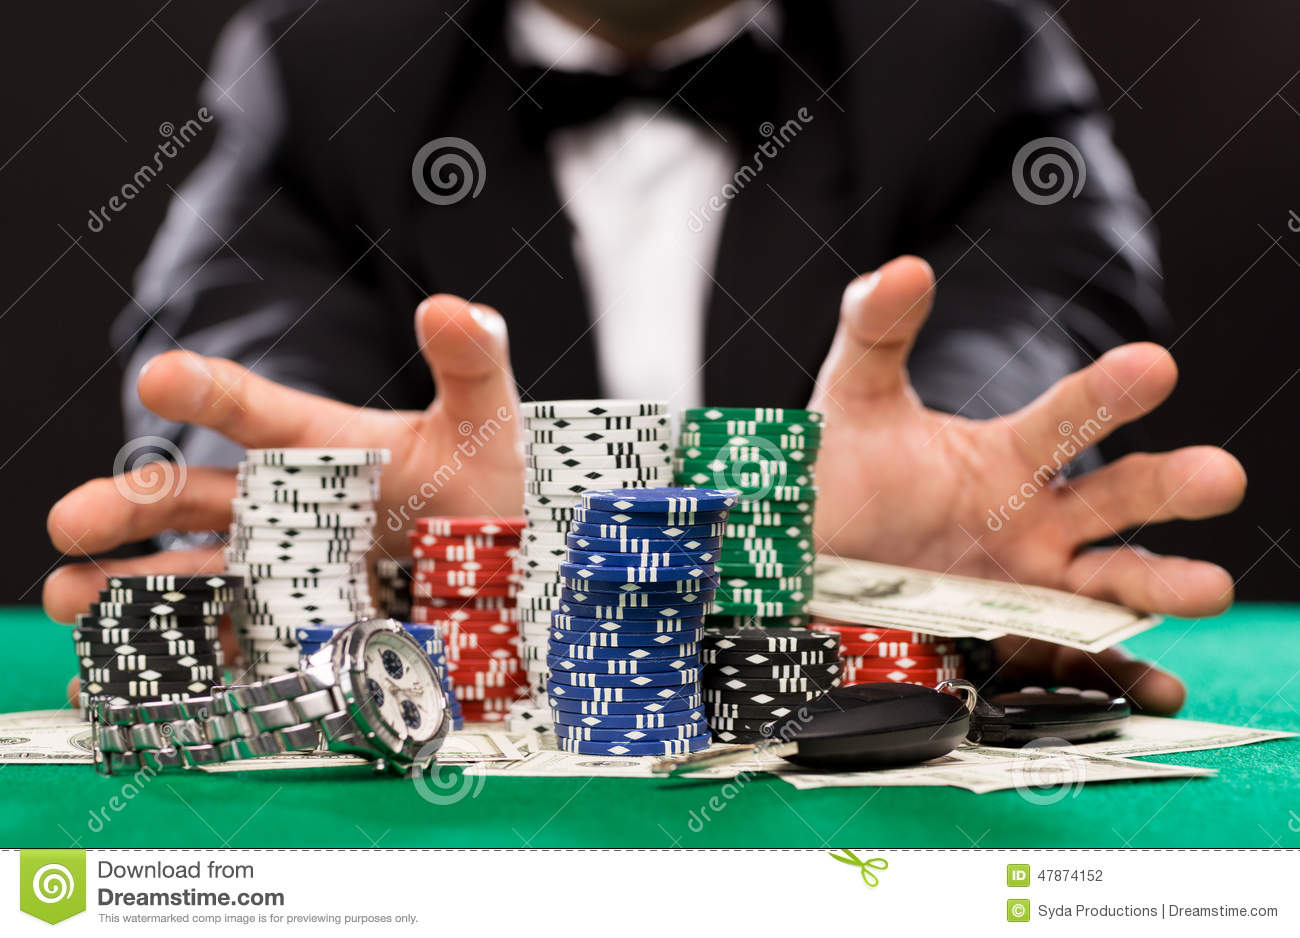 How to make money playing poker